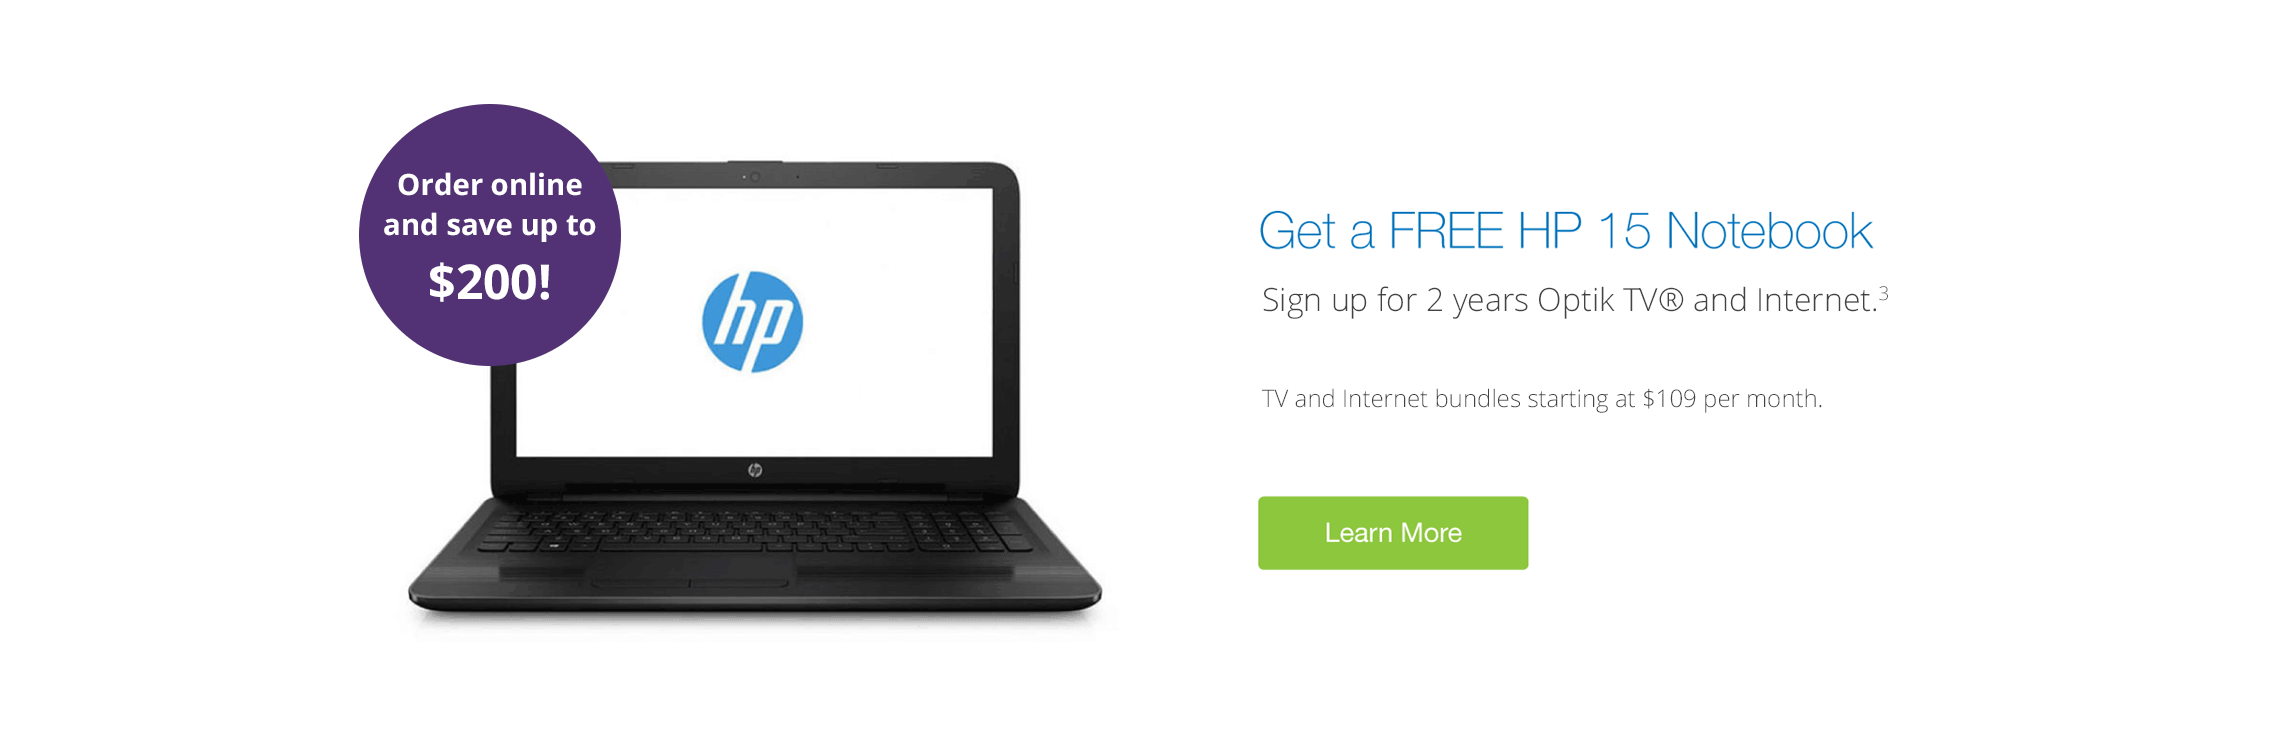 Get a FREE HP 15 Notebook.